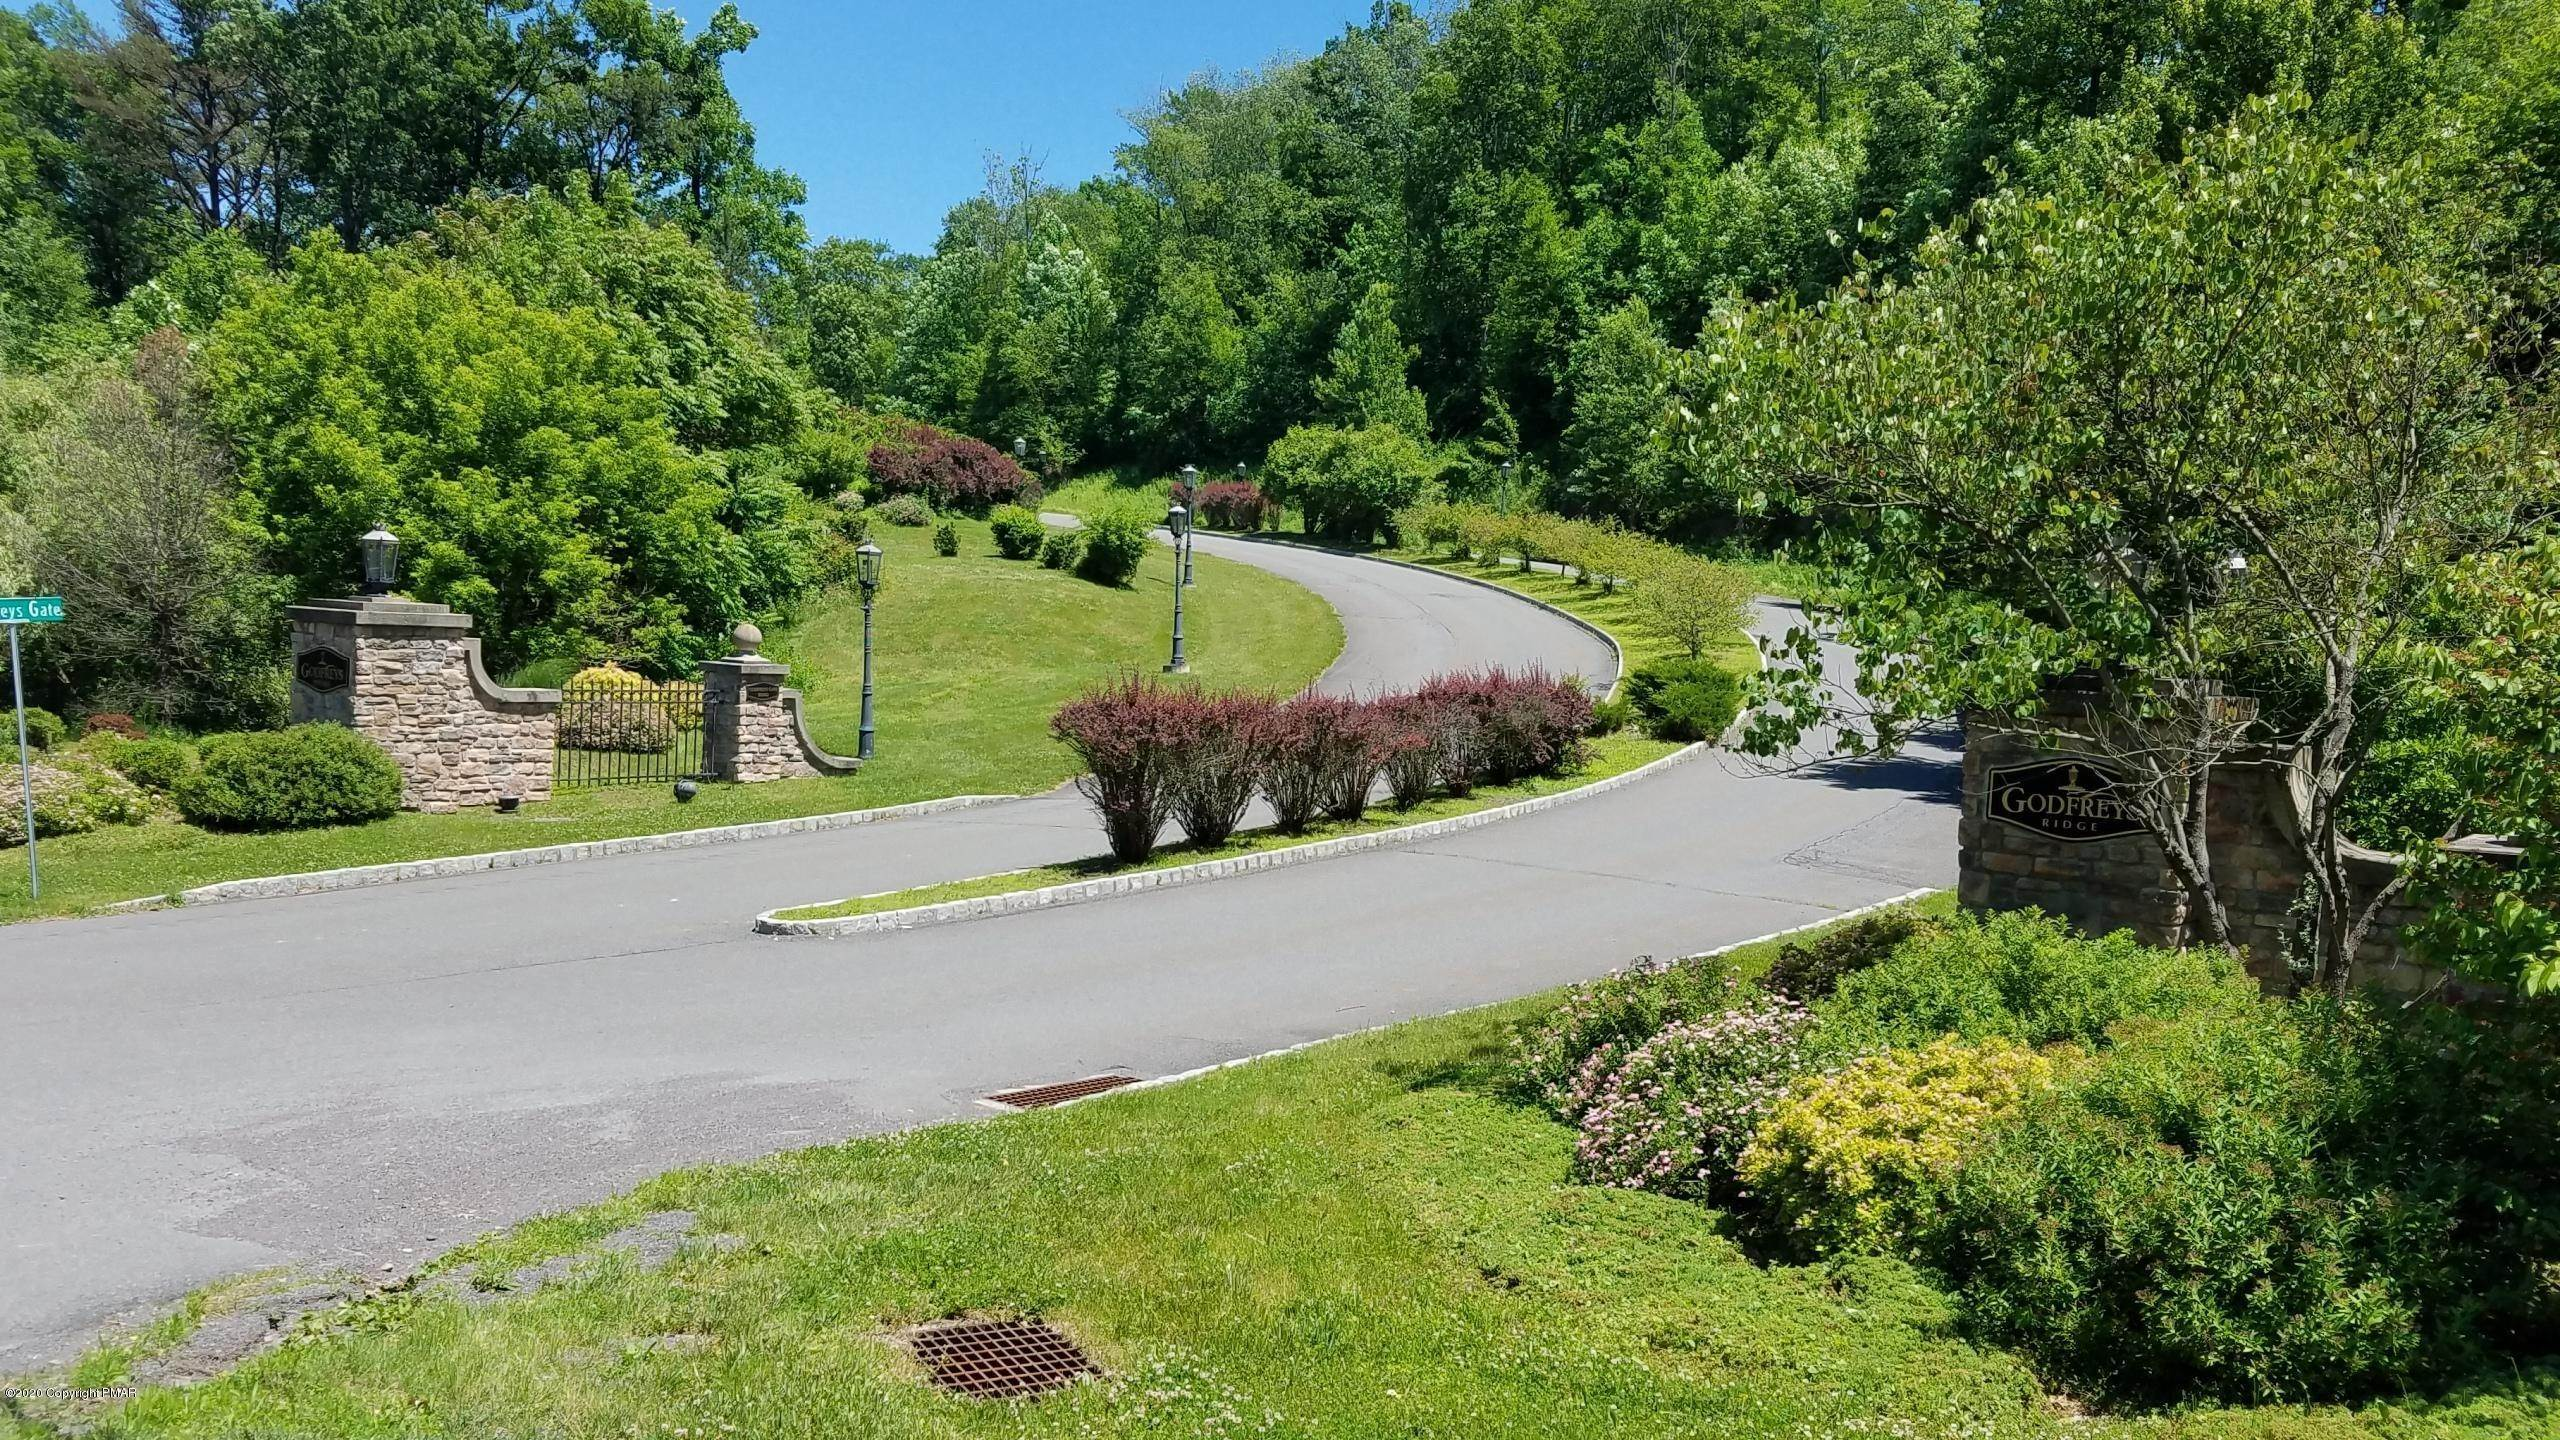 Land for Sale at Lot V8 Godfrey's Gate Stroudsburg, Pennsylvania 18360 United States